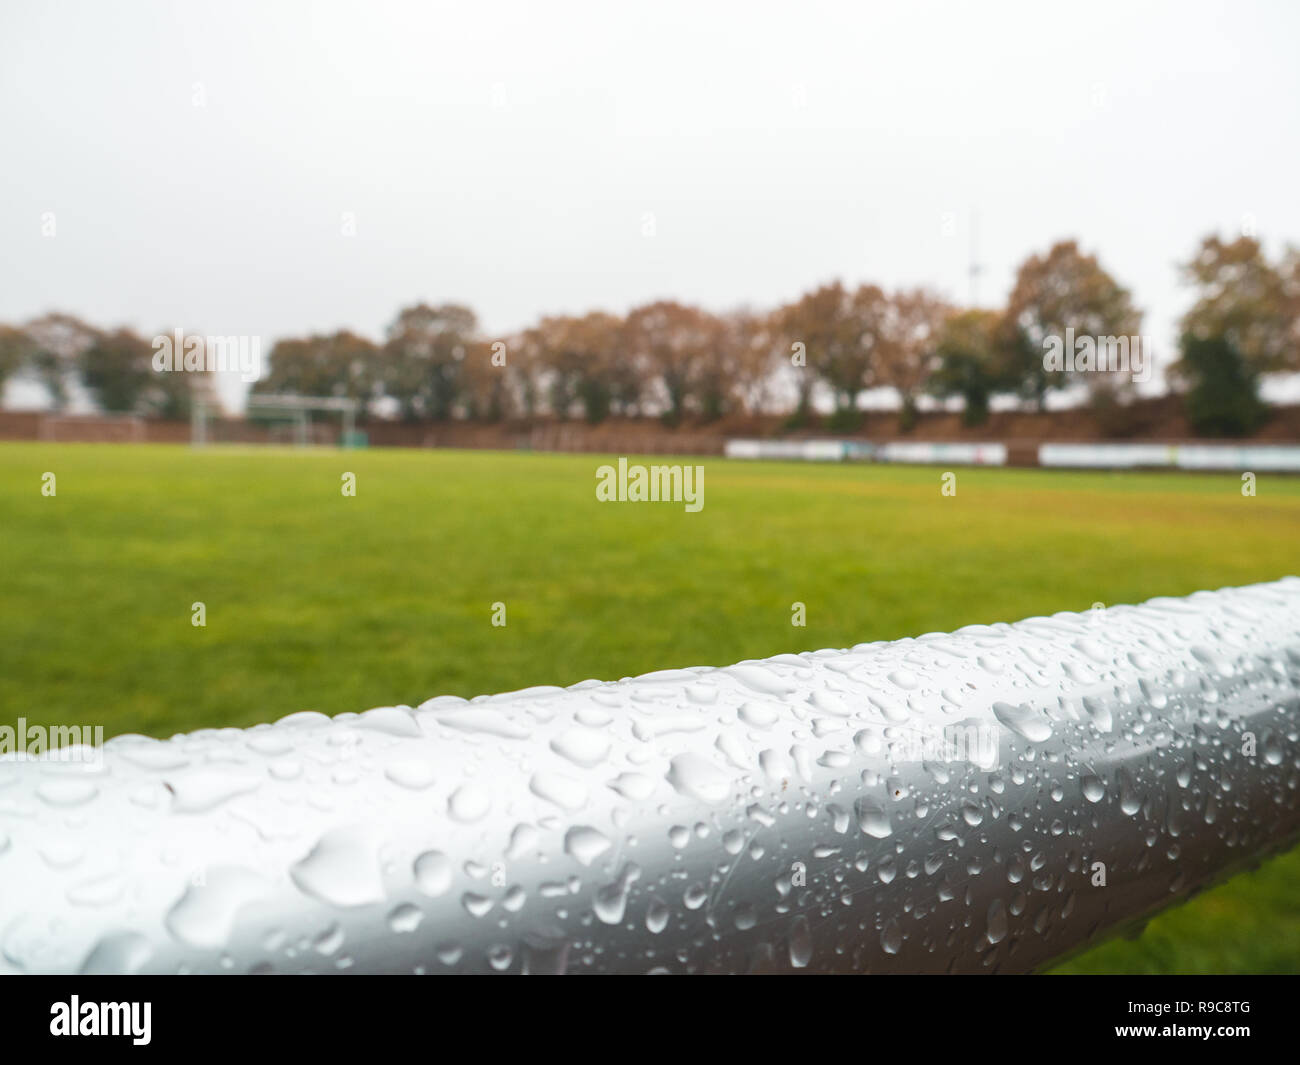 close-up shot of wet hand rails at Rural grass soccer pitch in Germany - Stock Image